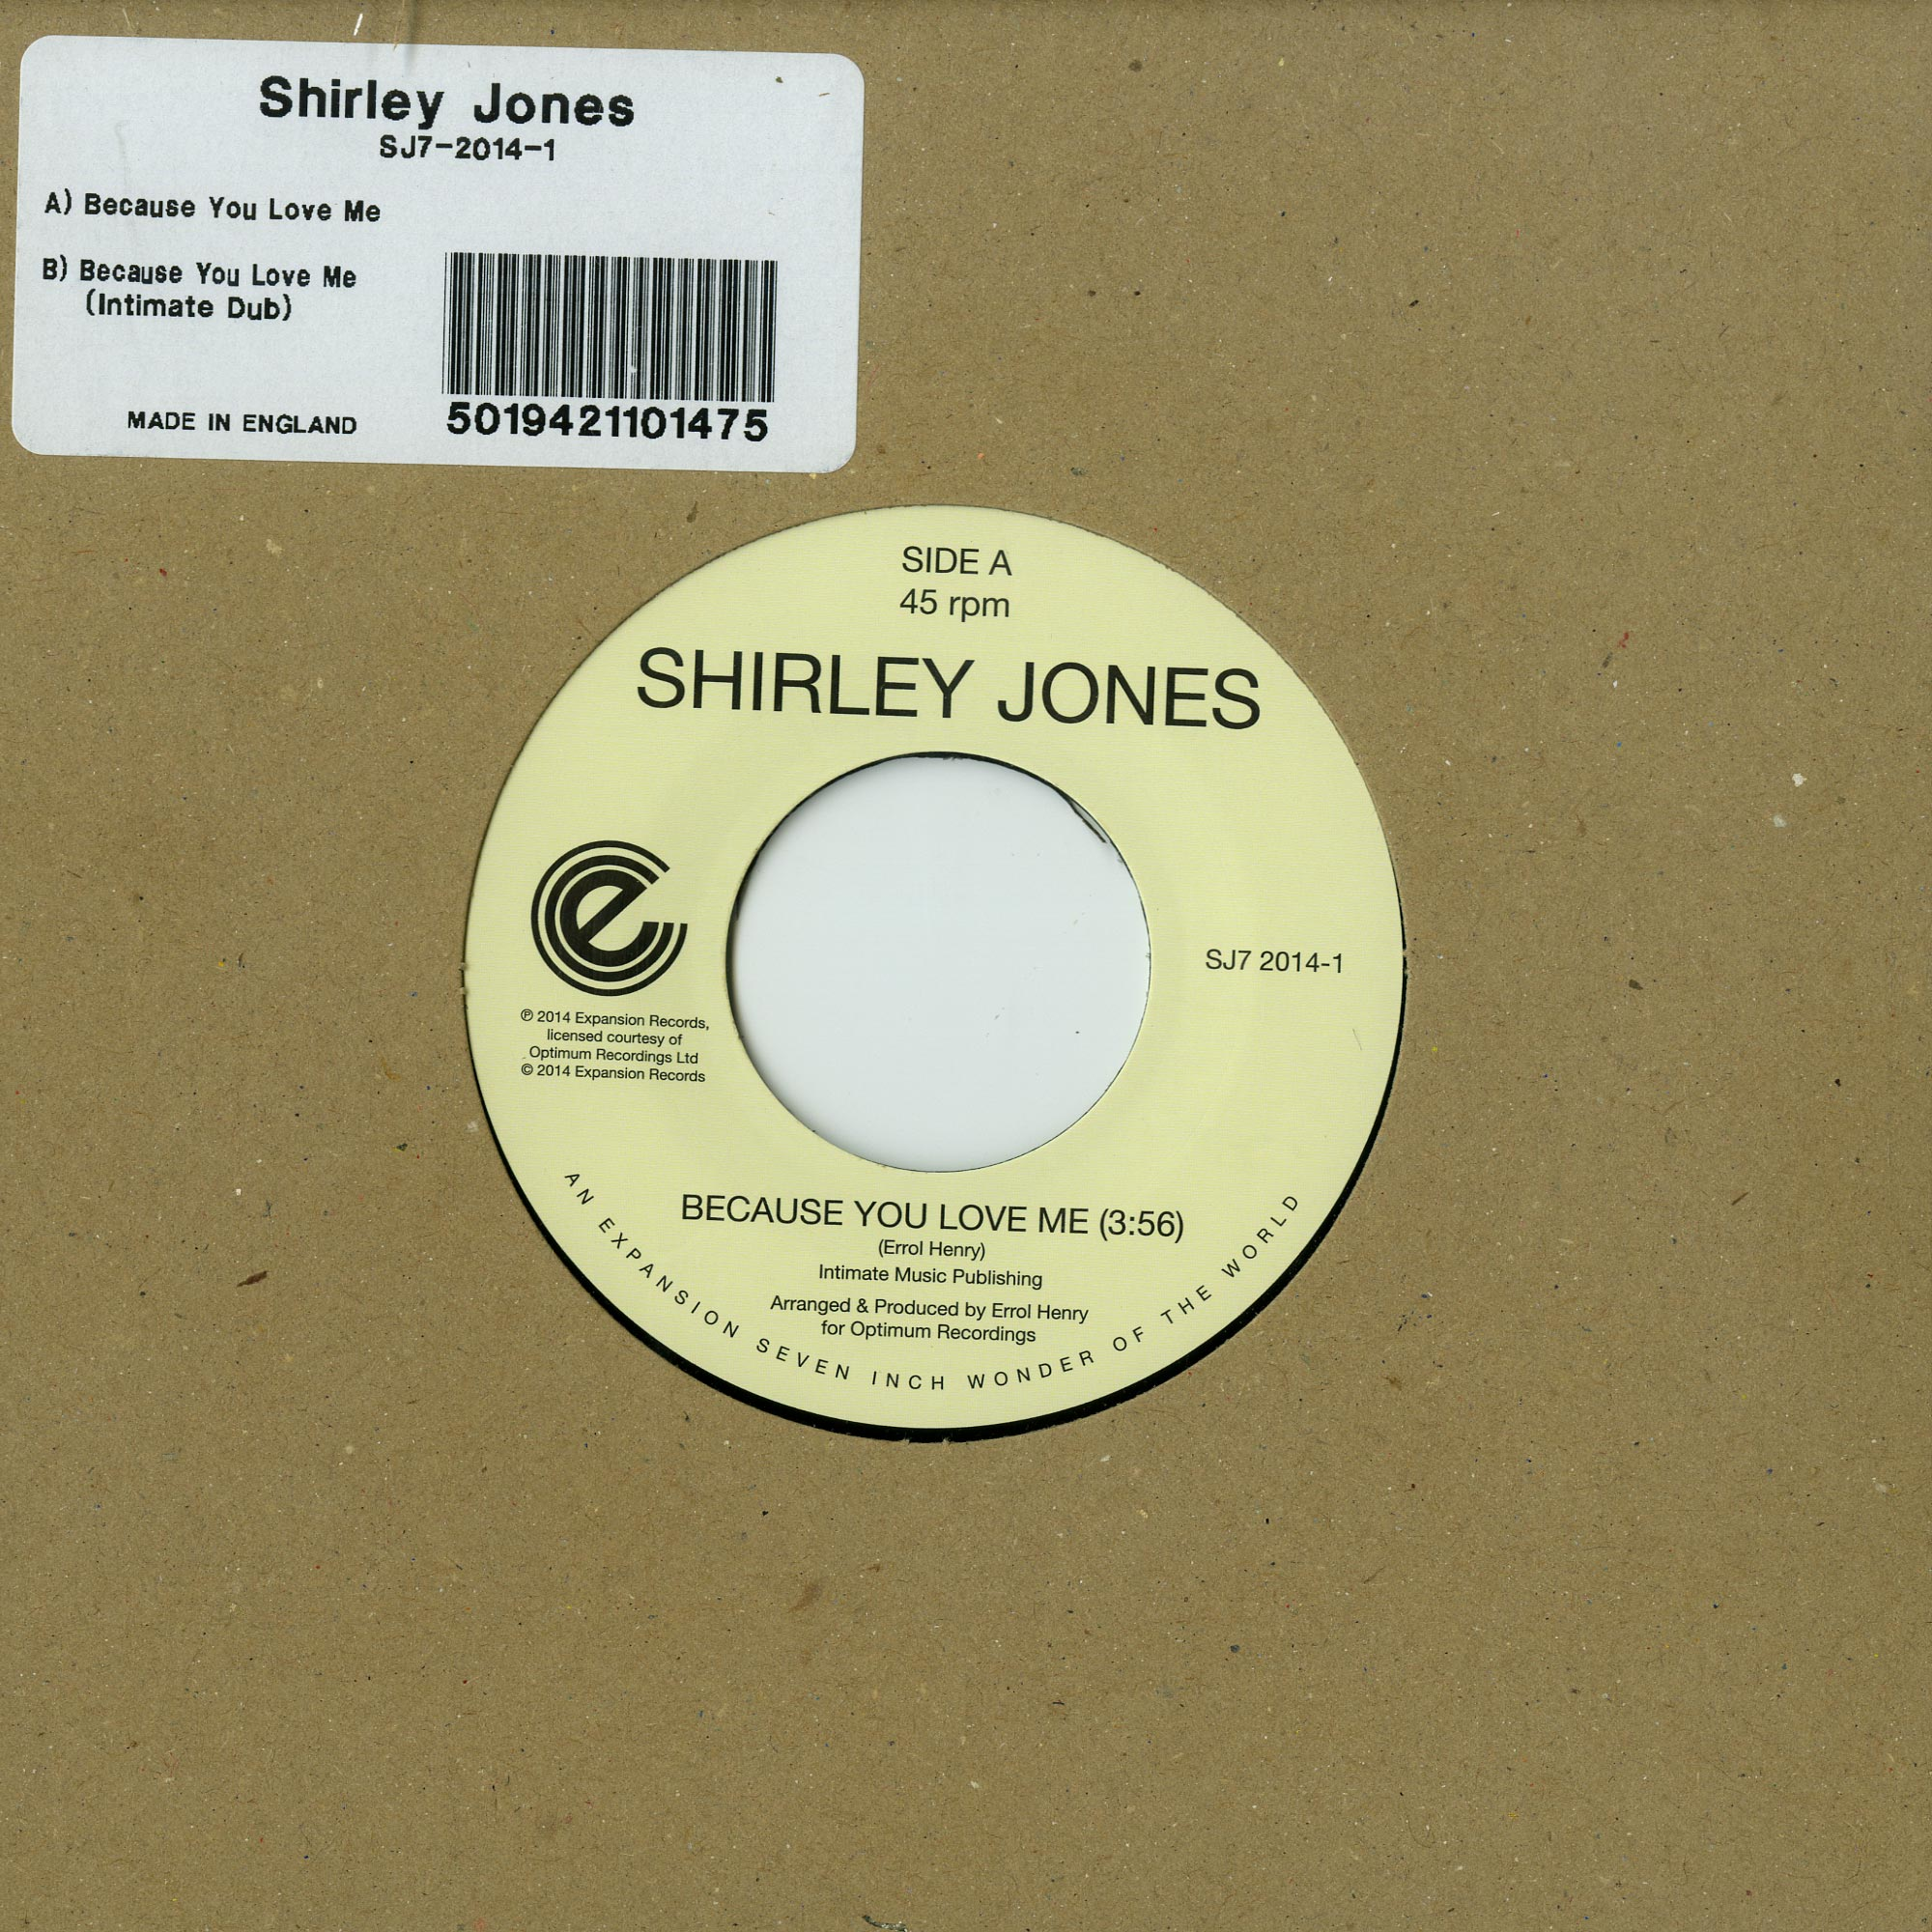 Shirley Jones - BECAUSE YOU LOVE ME